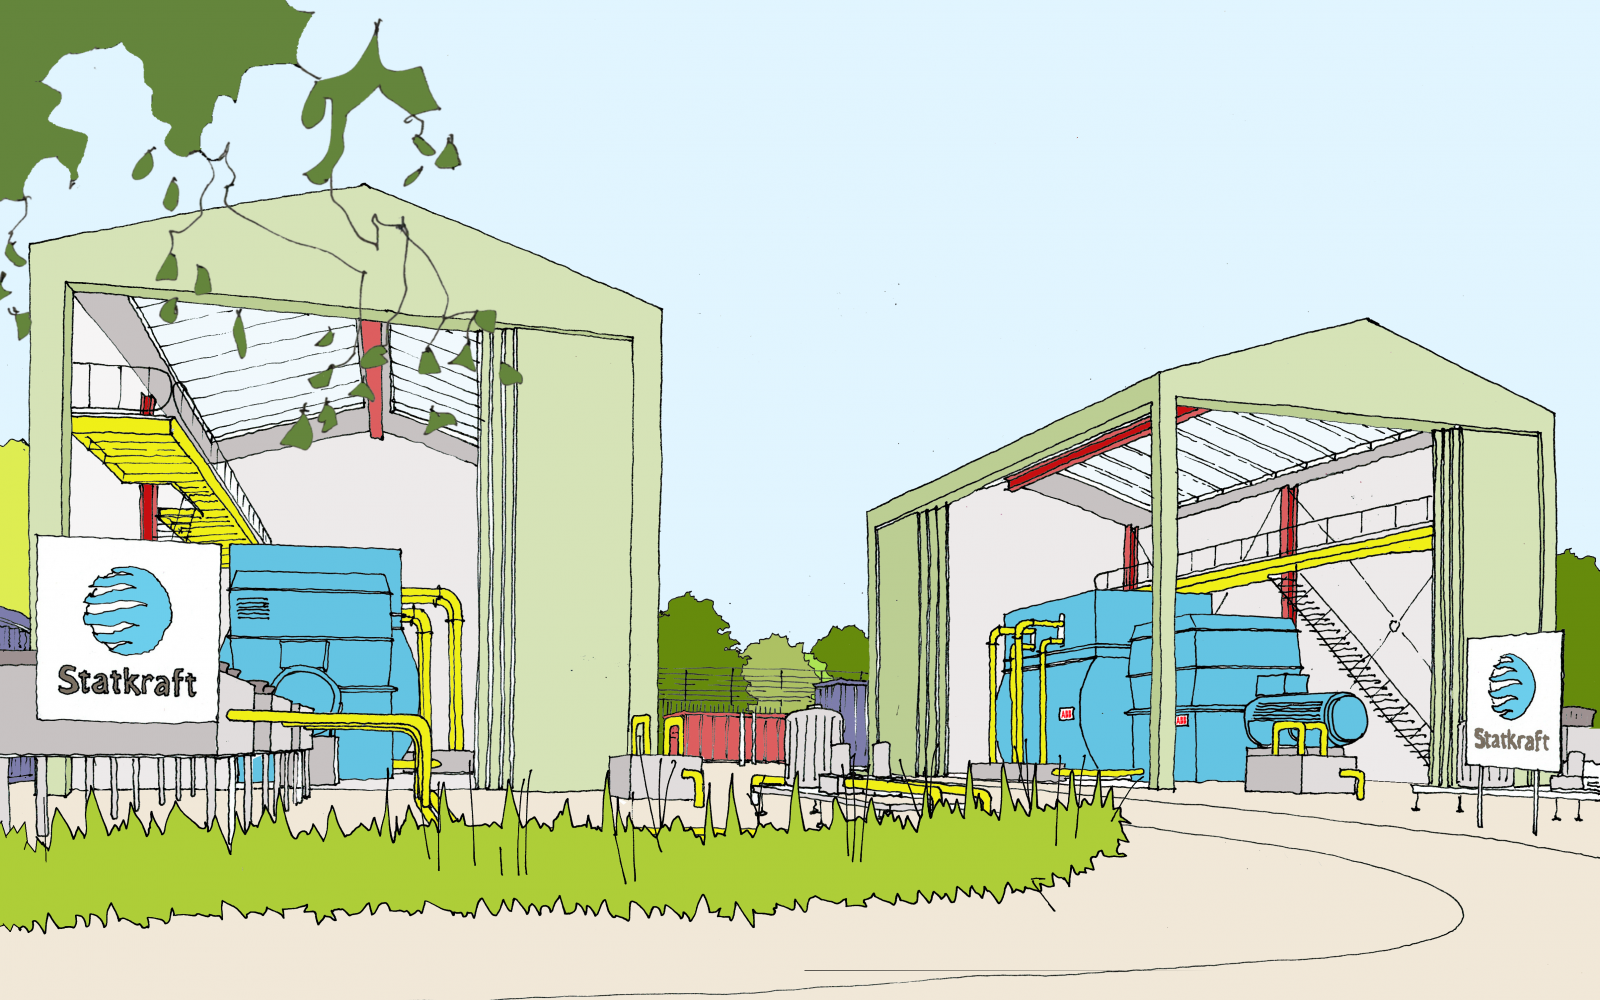 An artist's impression of the Lister Drive site. Image: Statkraft.